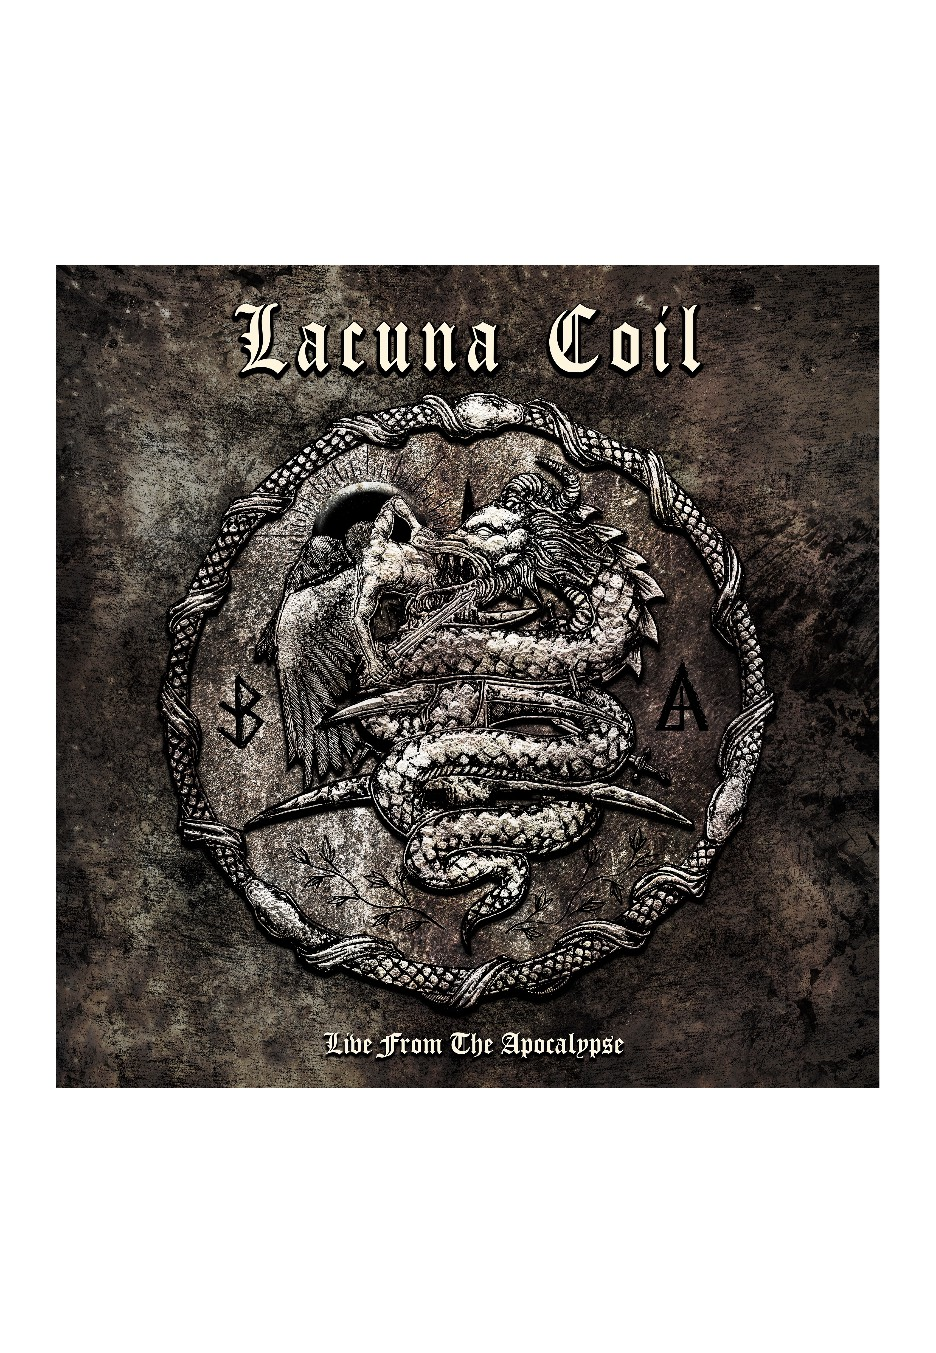 Lacuna Coil - Live From The Apocalypse Ltd. - CD/DVD